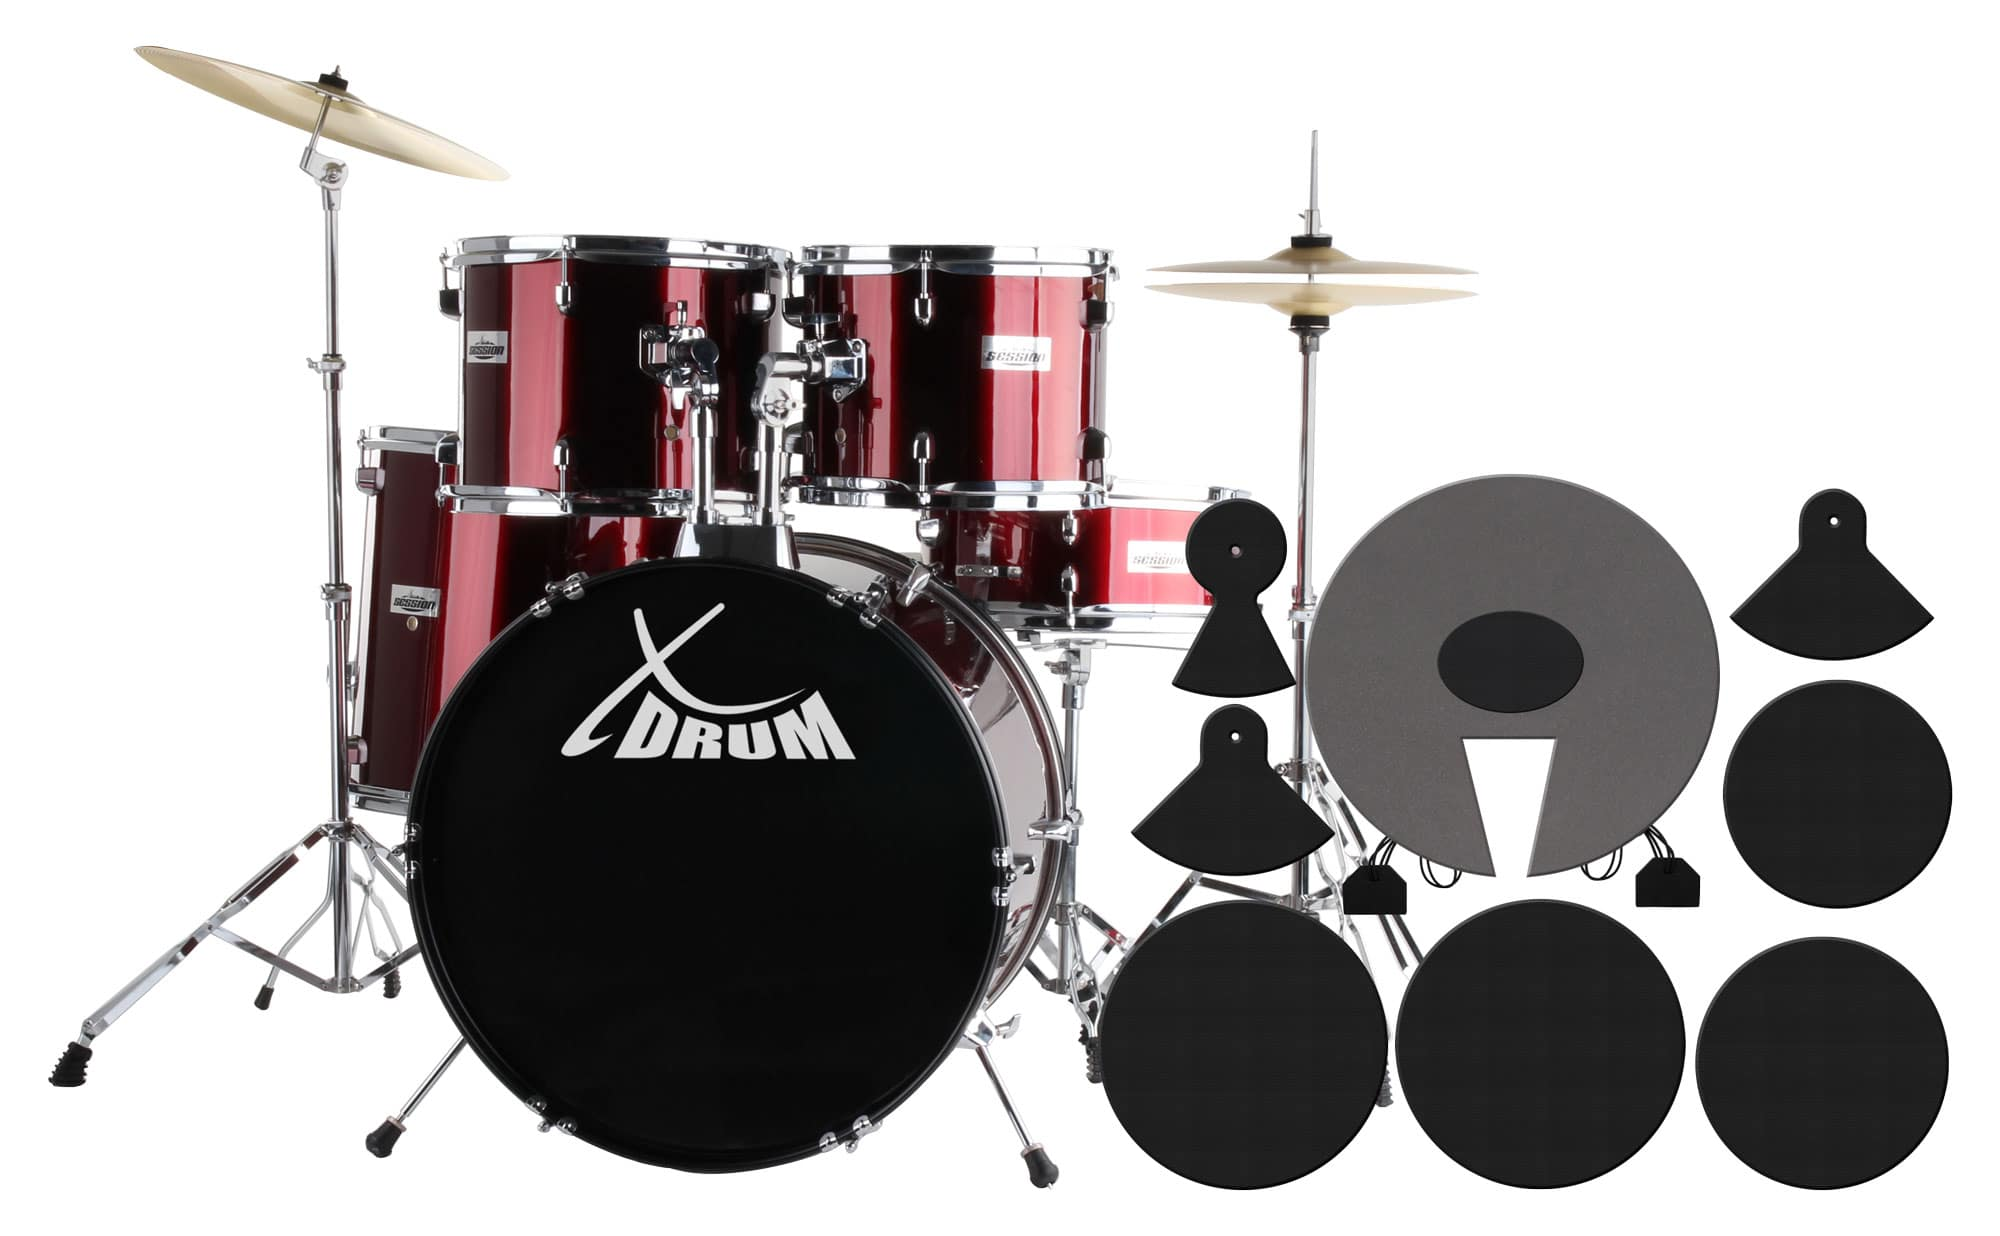 Semi Xdrum 20 Quot Studio Drum Set Black Incl Damper Set